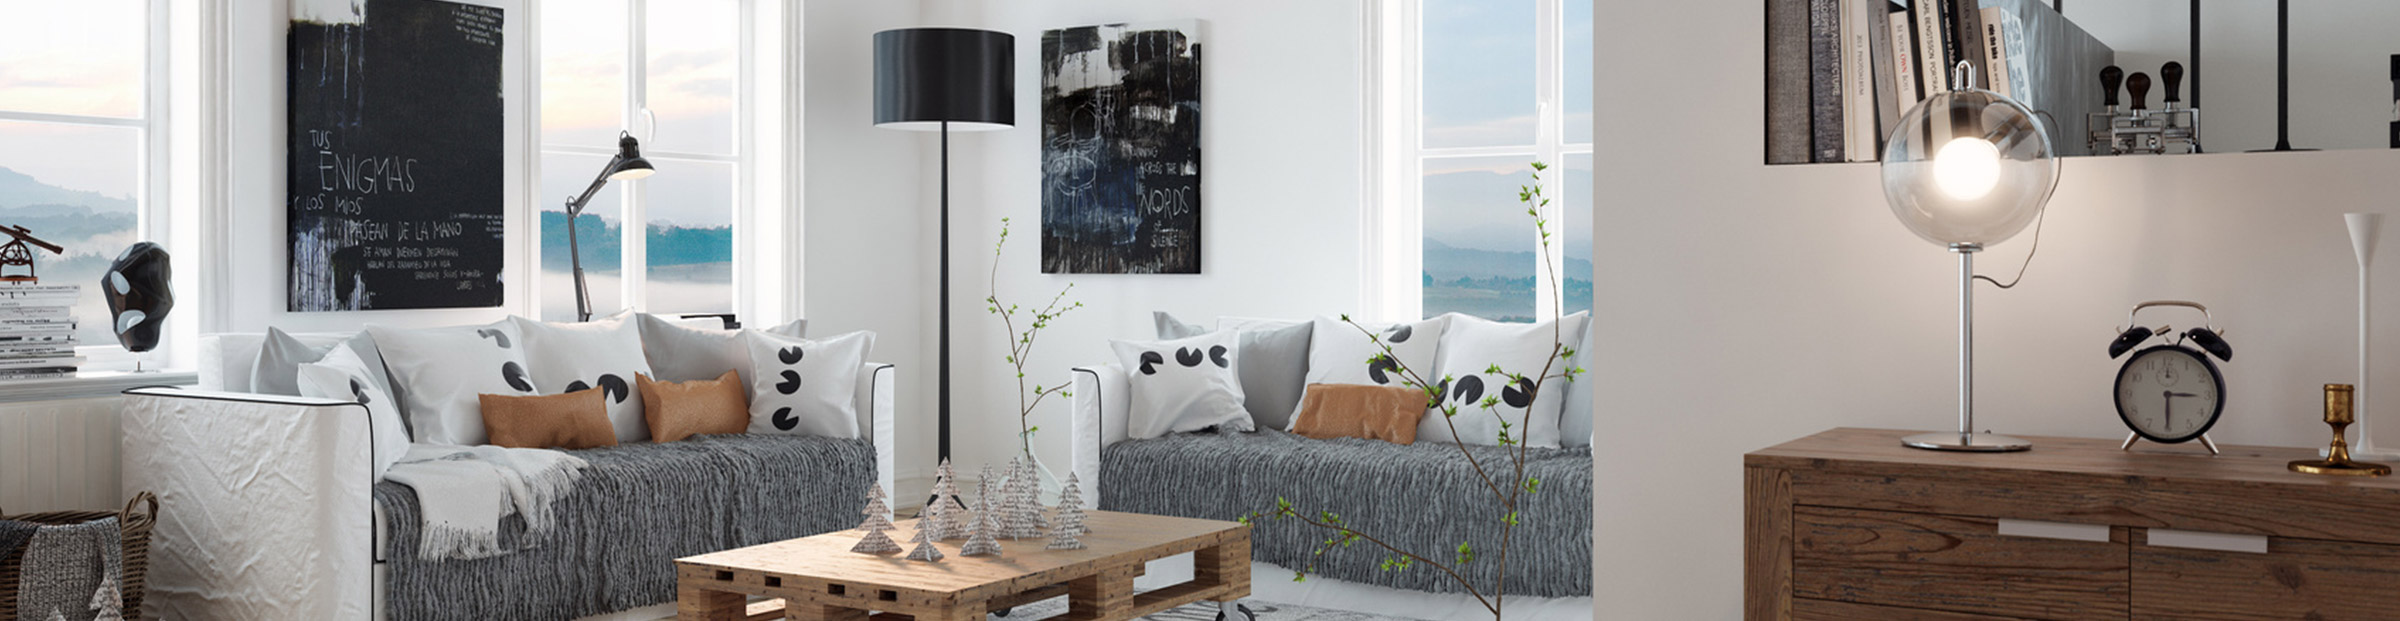 immobilier thonon les bains maisons et appartements en vente et en location. Black Bedroom Furniture Sets. Home Design Ideas